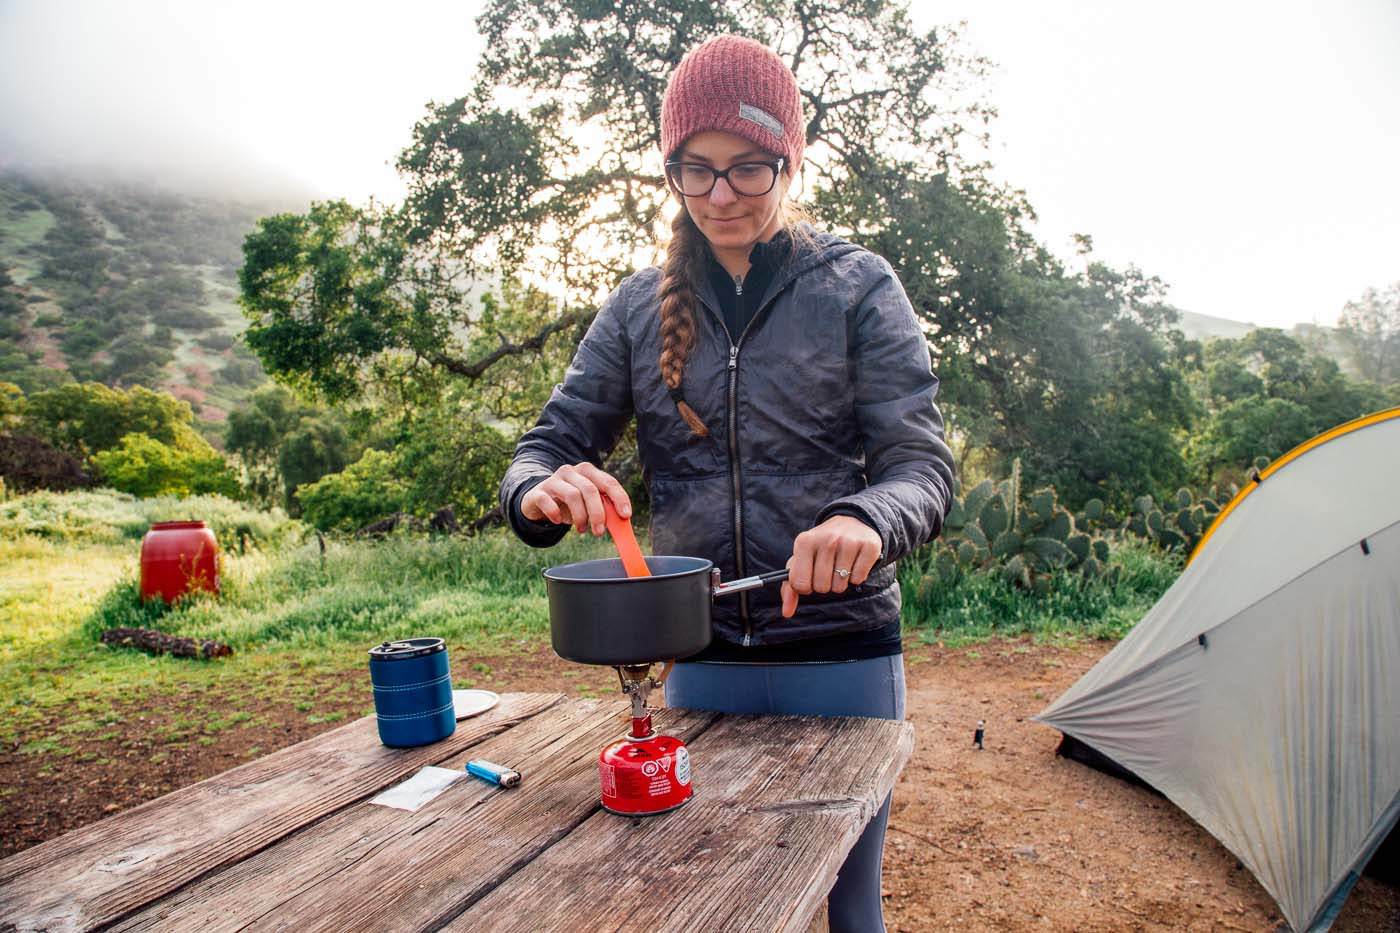 Woman cooking over a backpacking stove with a tent in the background.